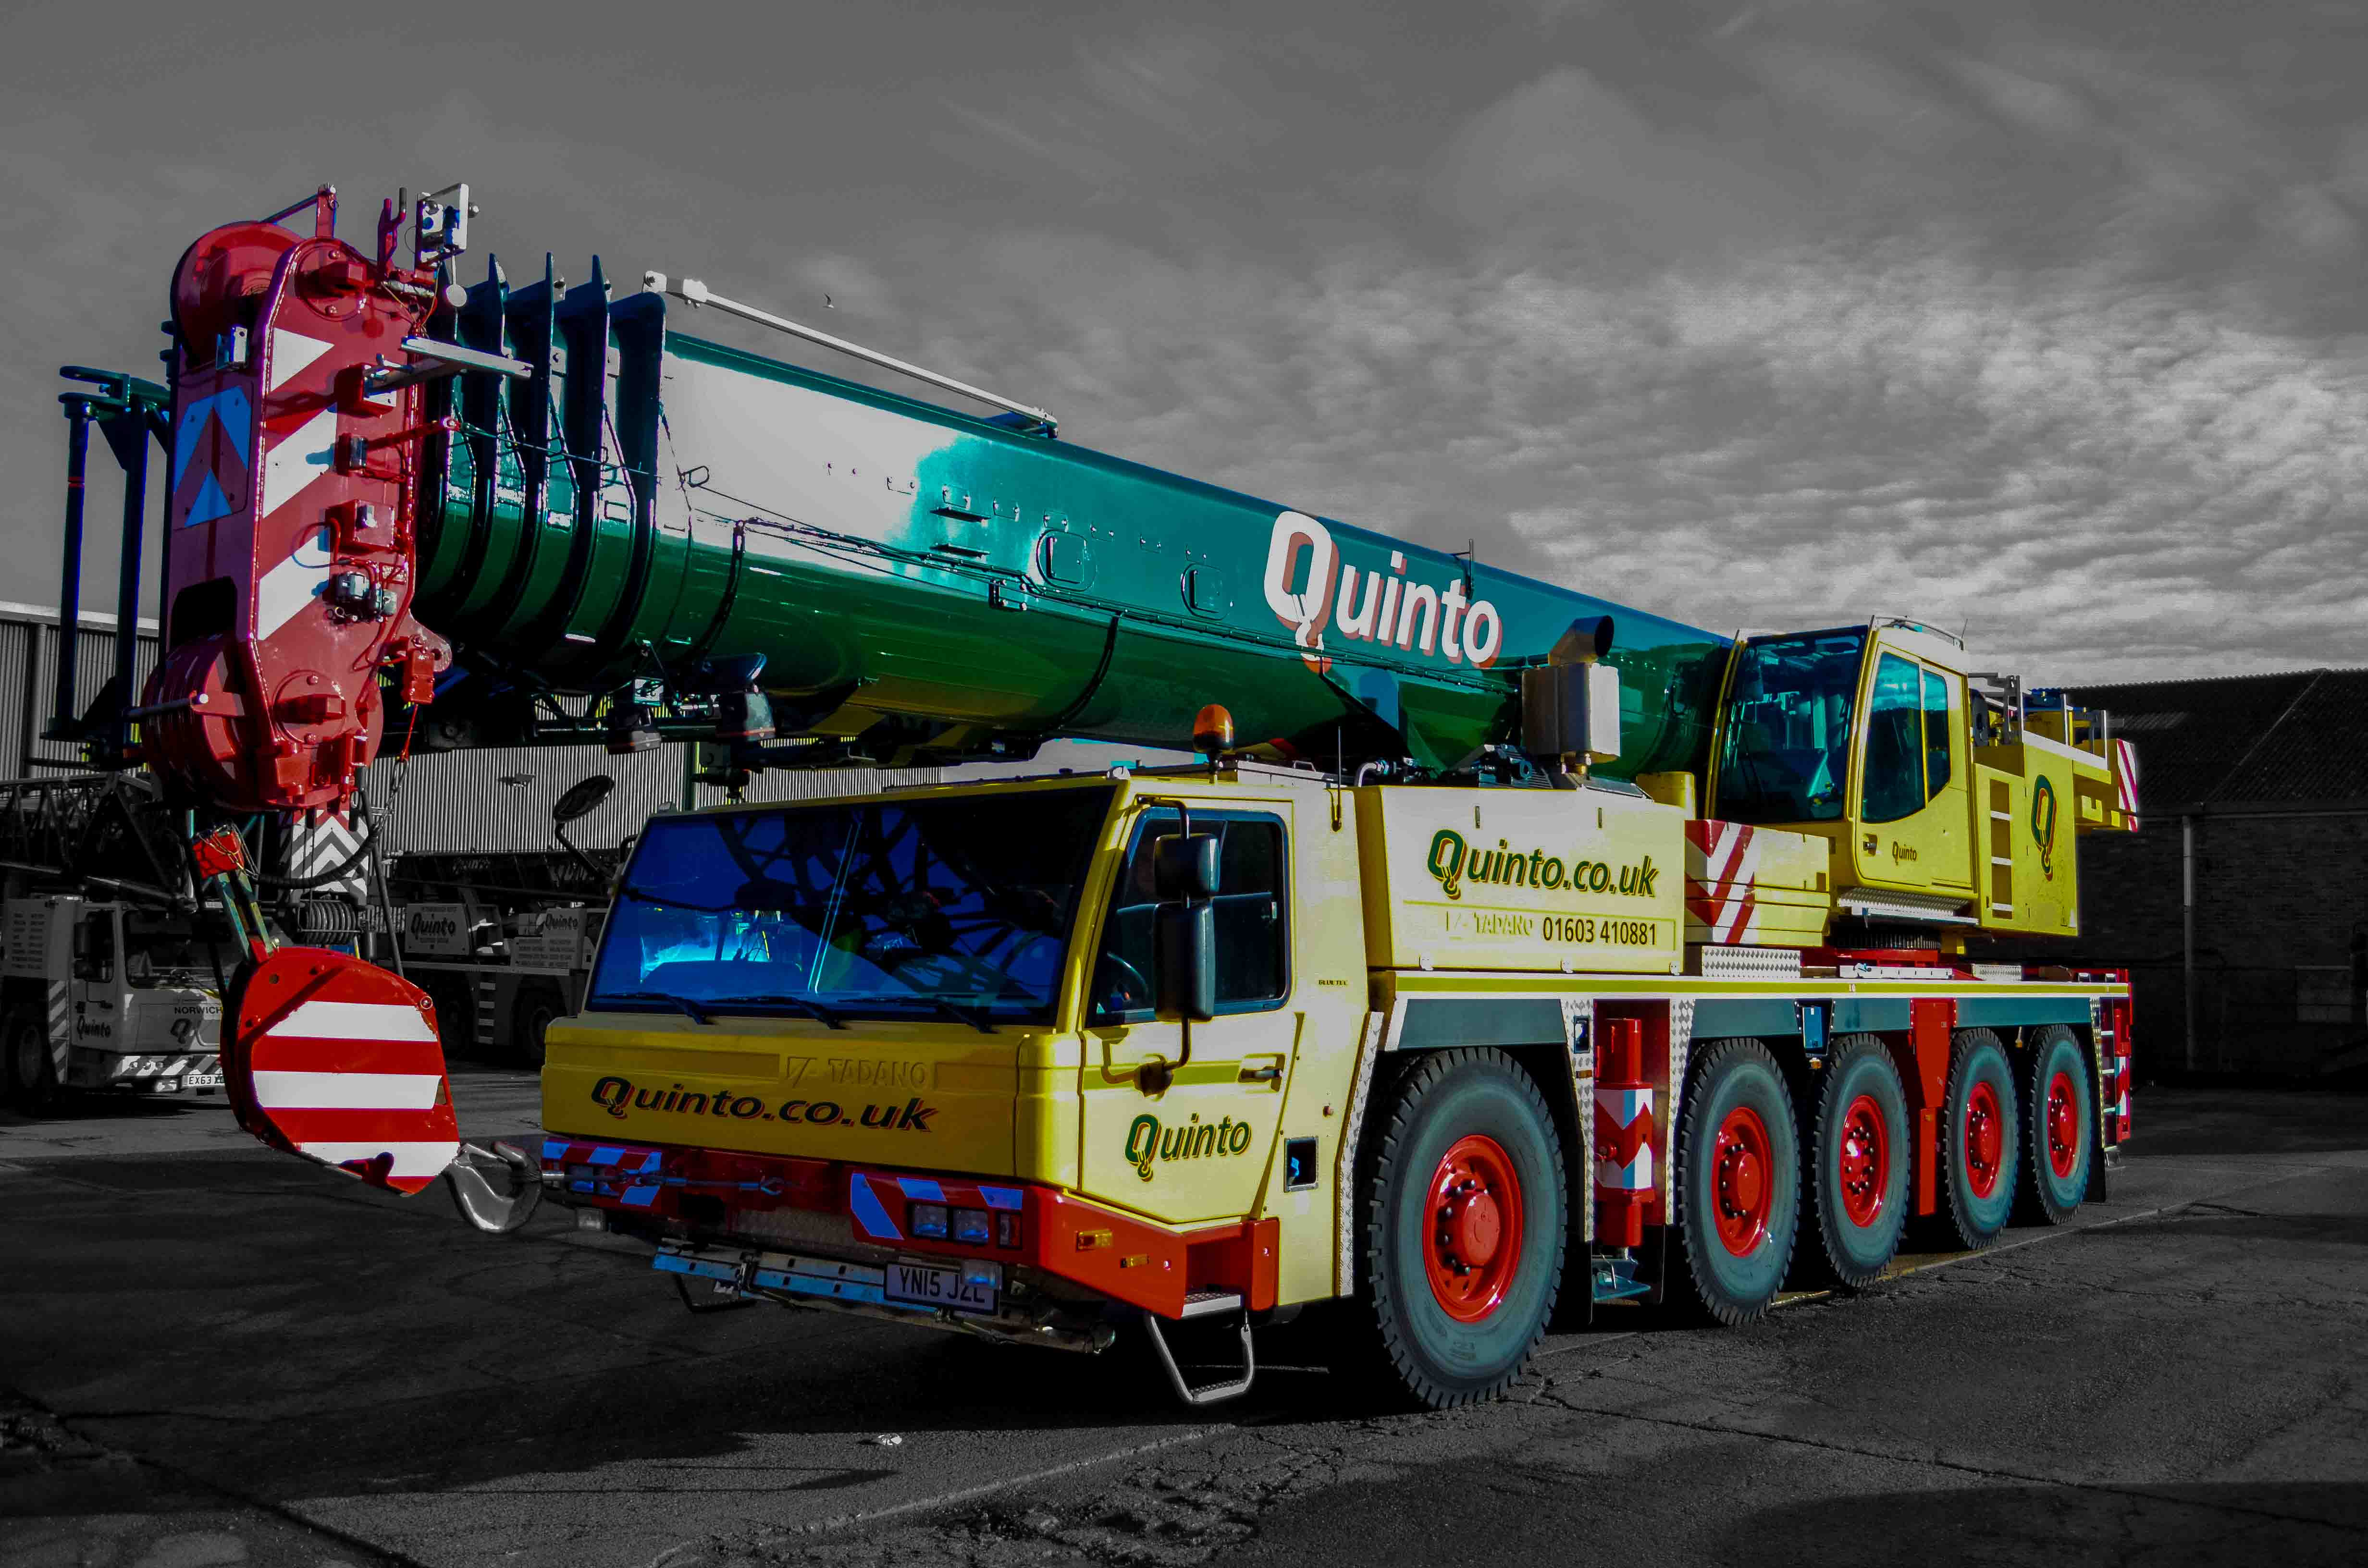 Quinto Crane and Plant - Crane Hire and Contract Lifting